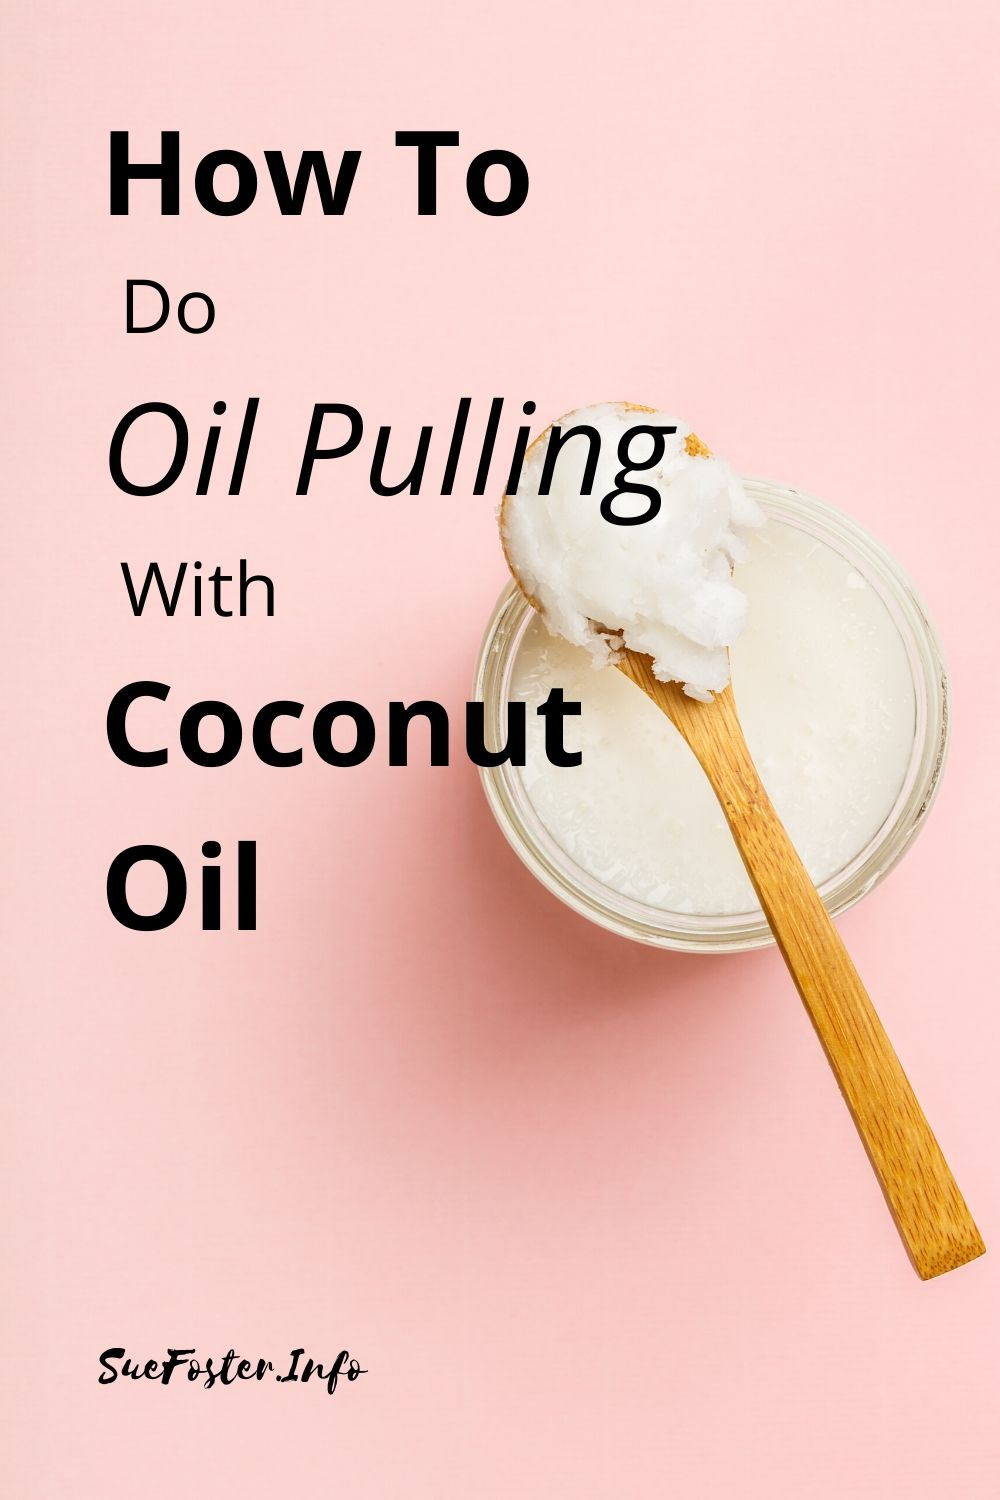 How to do oil pulling with coconut oil